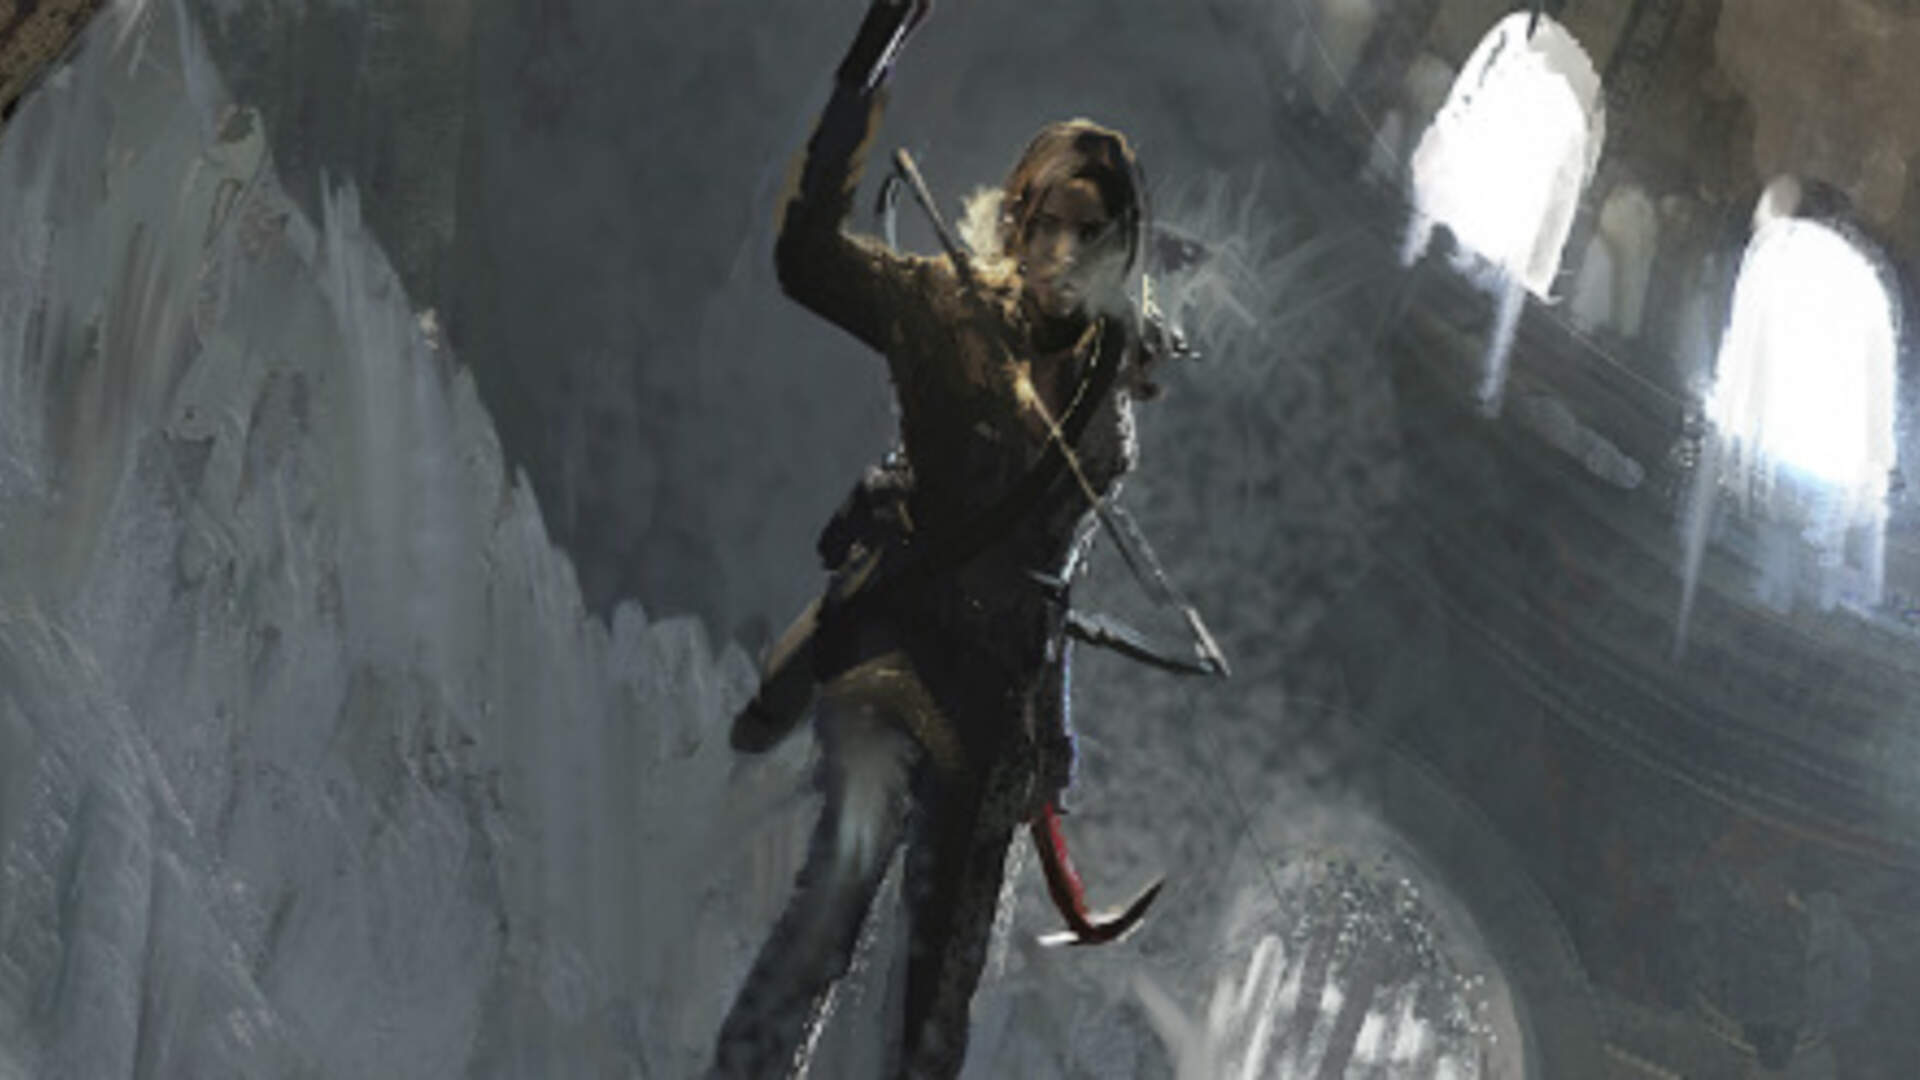 Rise of the Tomb Raider: The Xbox One's Uncharted 4 Defense